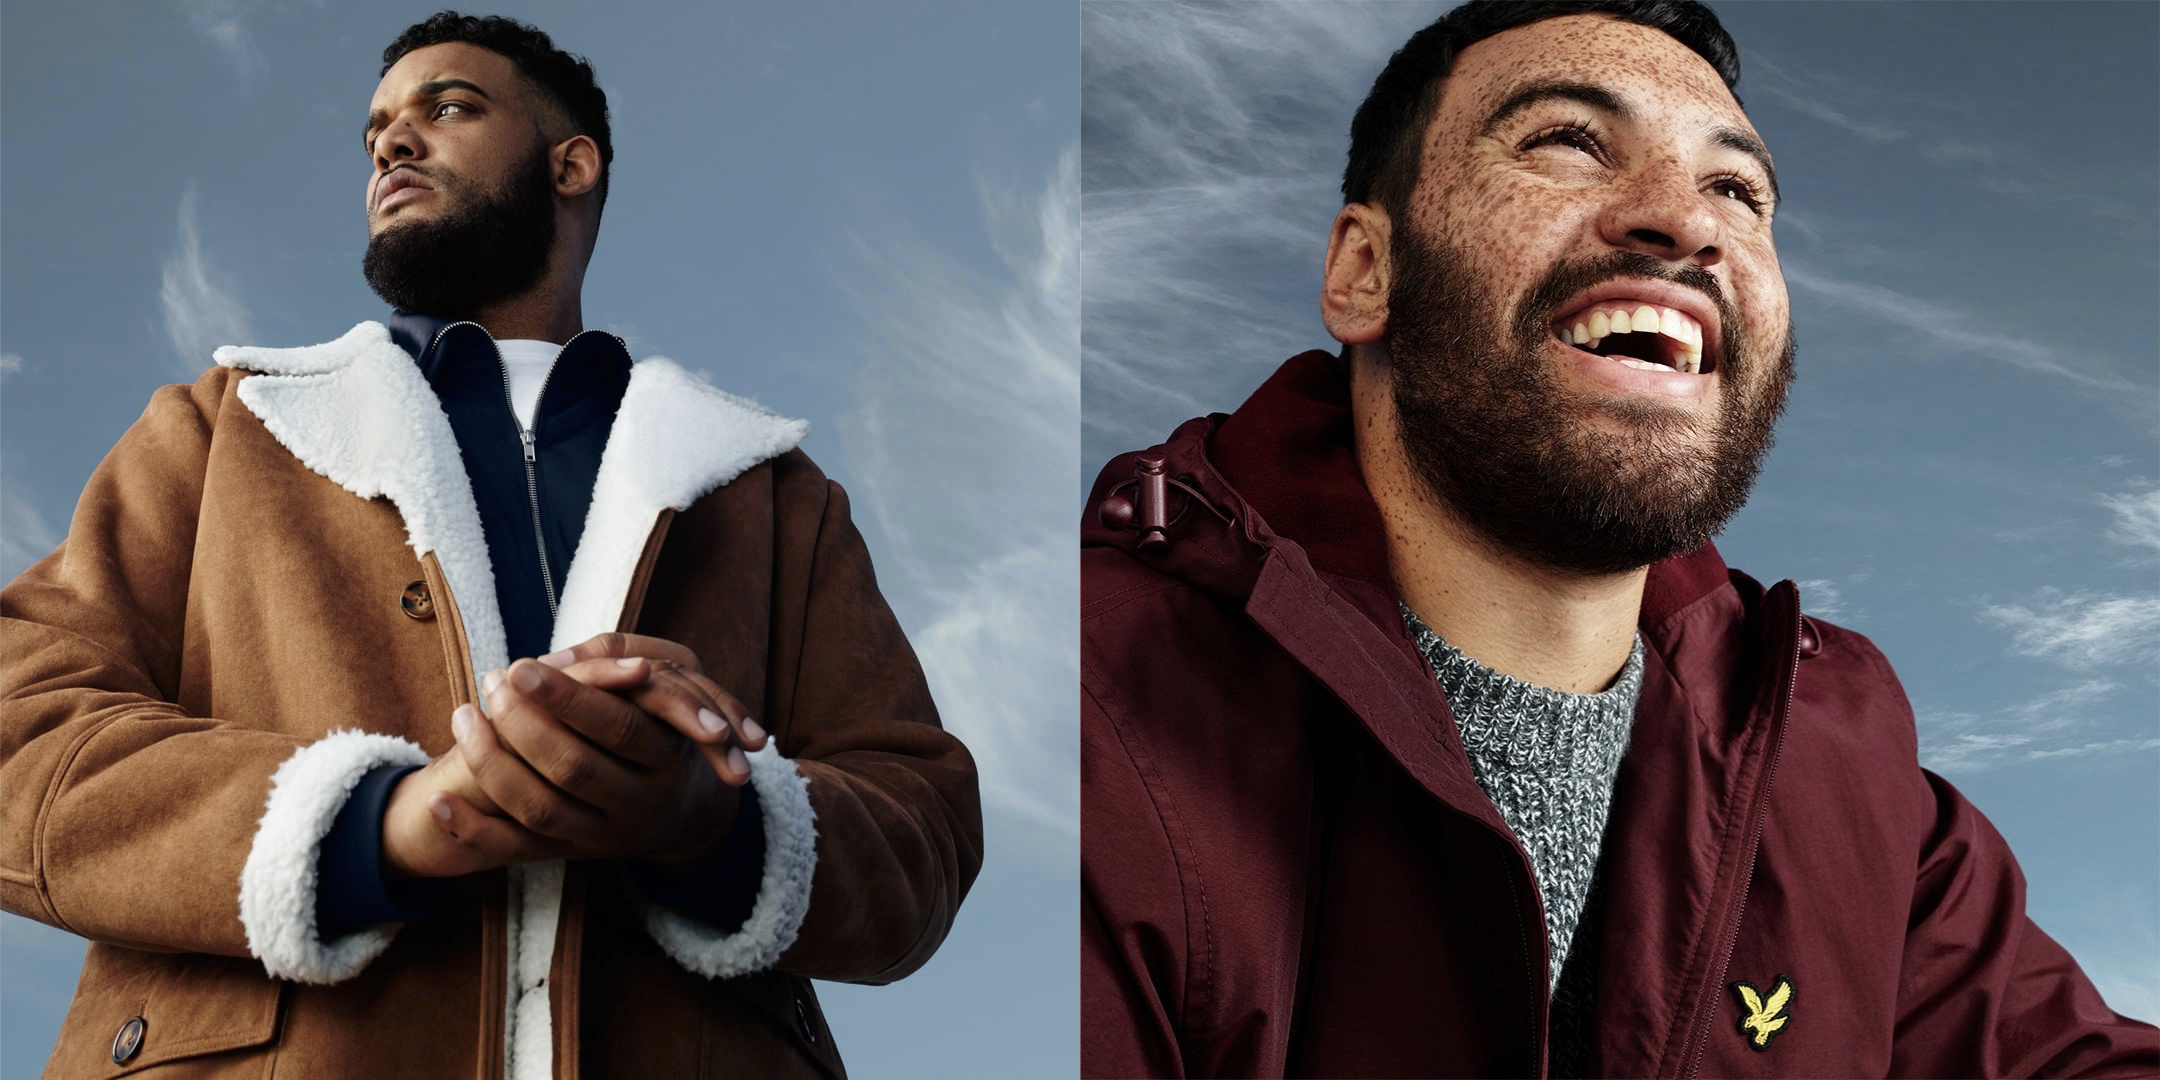 Bridge Models' Will Reid and Karl McGovern shoot for the Jacamo Winter Collection